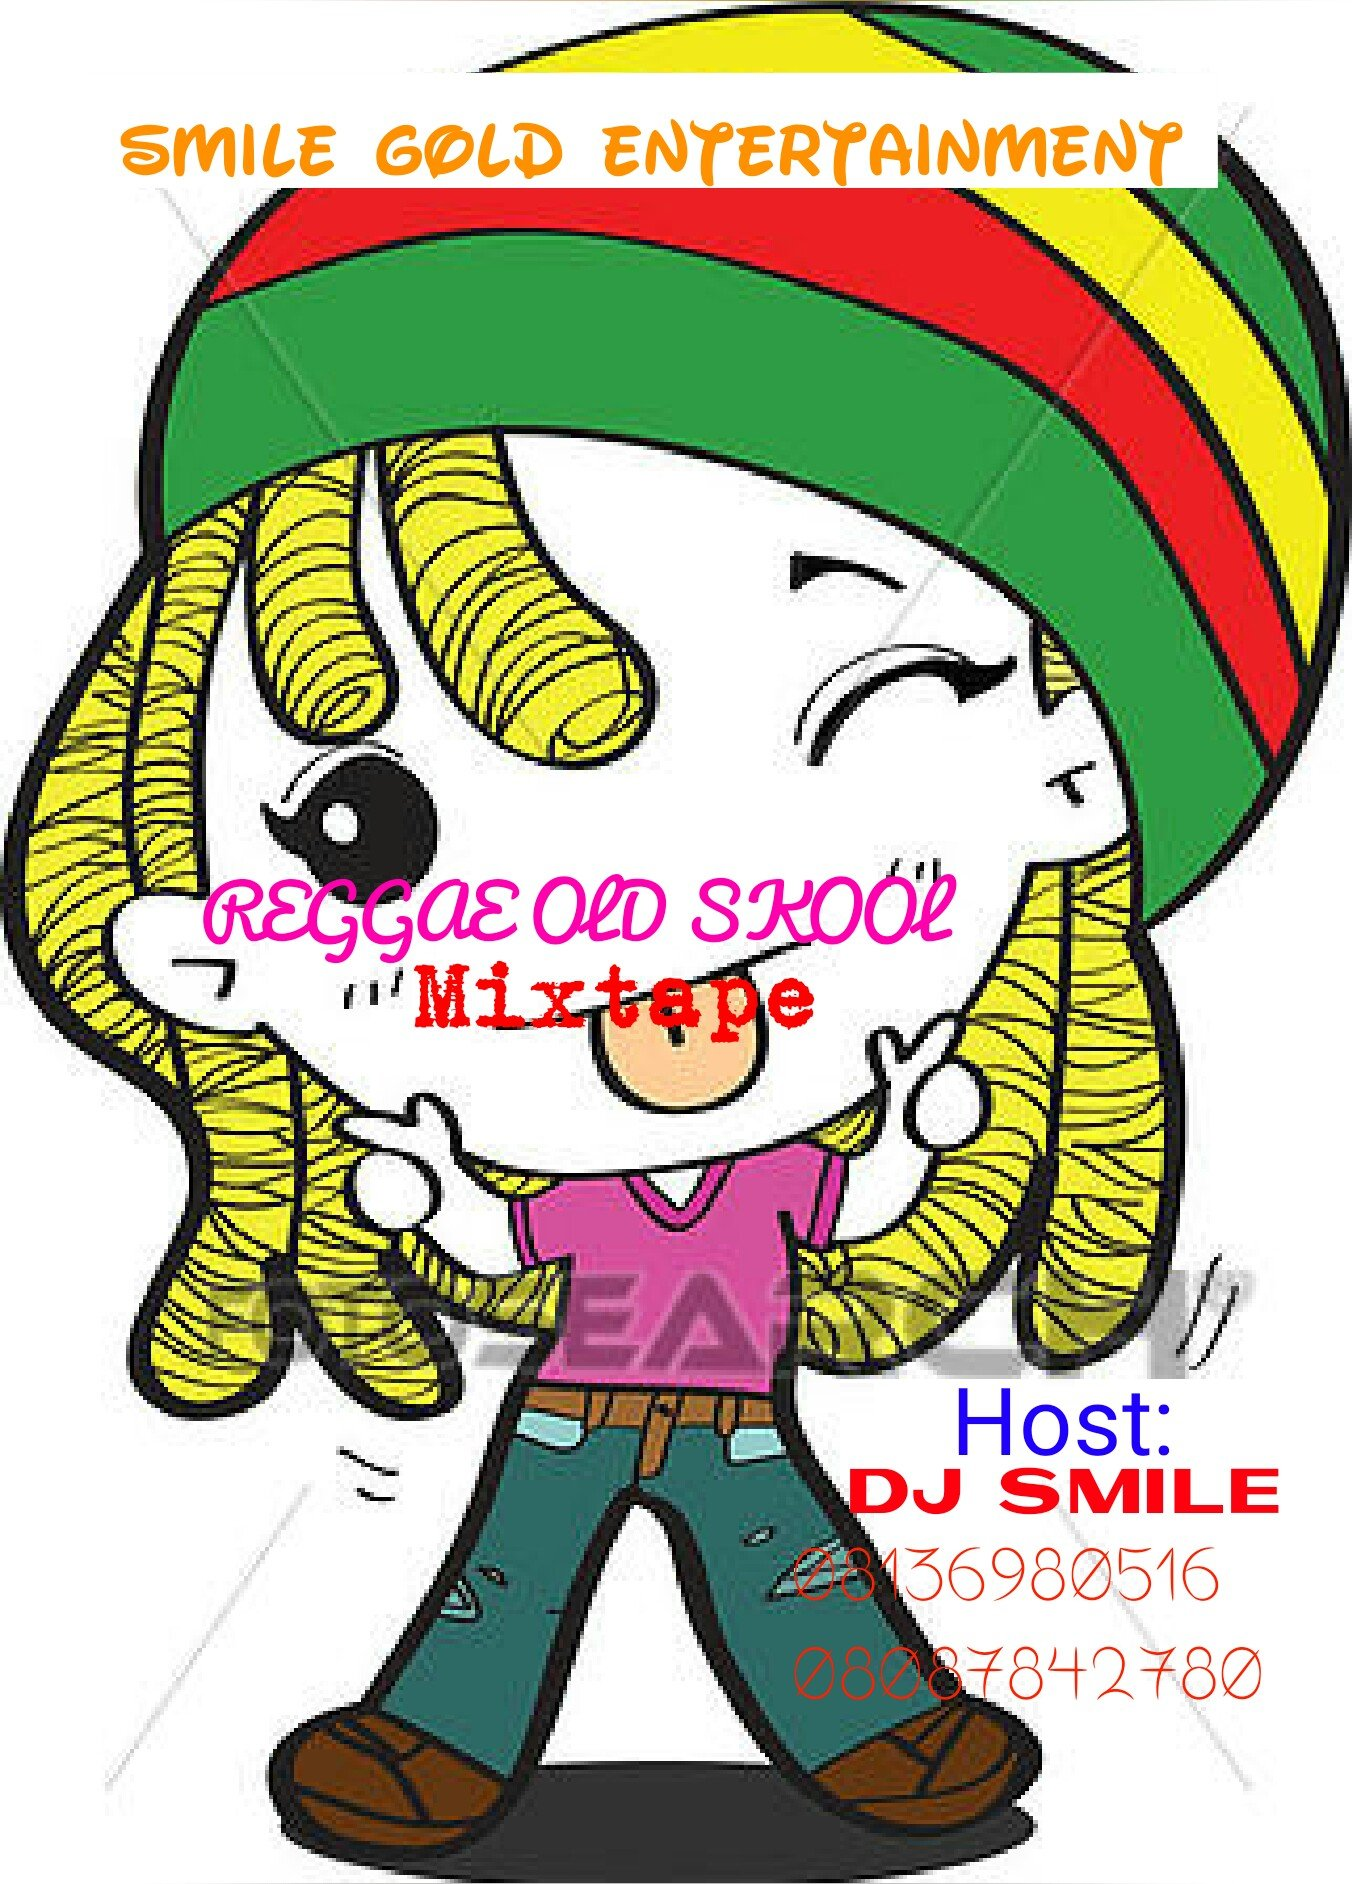 DJ SMILE NEW MIXTAPE reggae old skool mix 08136980516